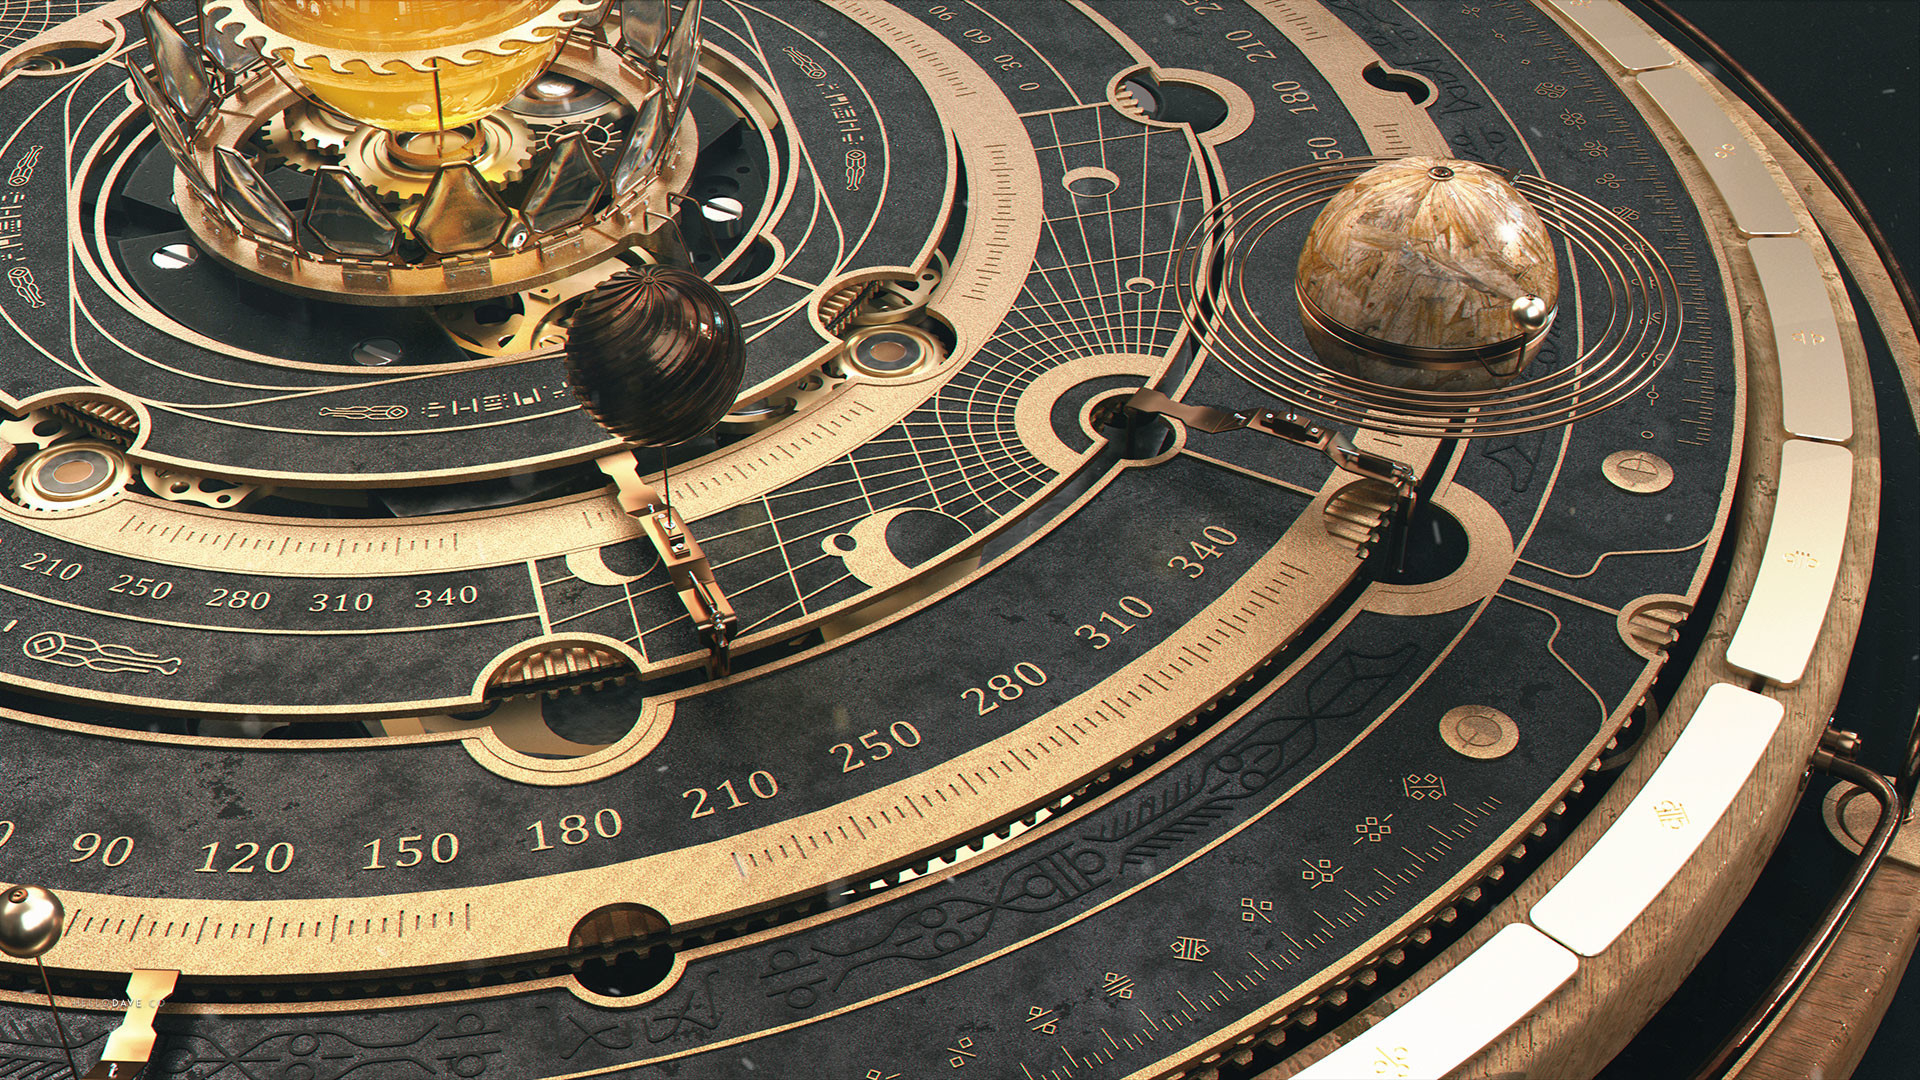 Davison carvalho steampunk table astrolabe 07 fhd